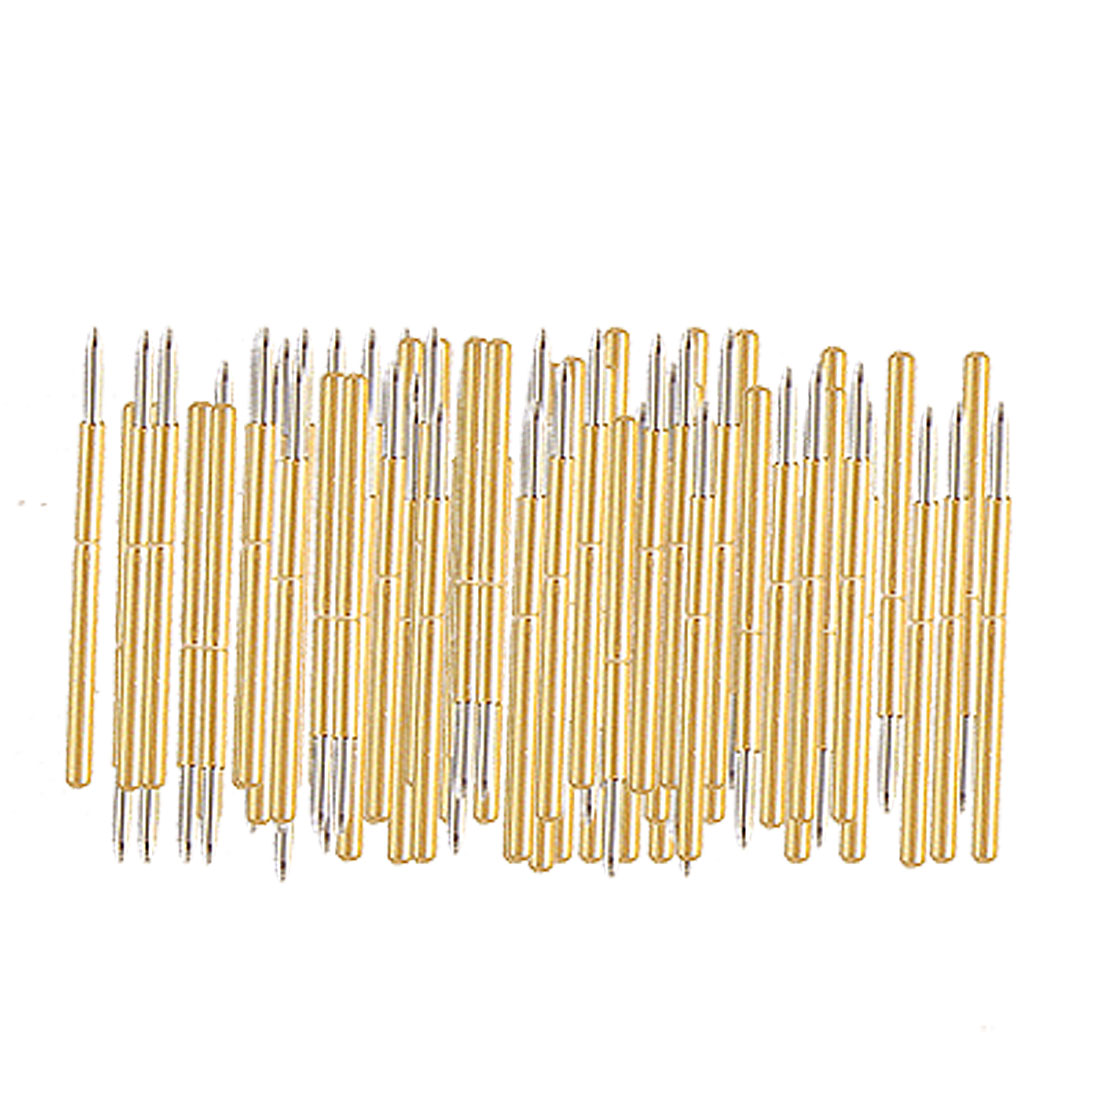 P100-B Spear Tip Spring Load Test Probes Gold Tone 100 Pcs